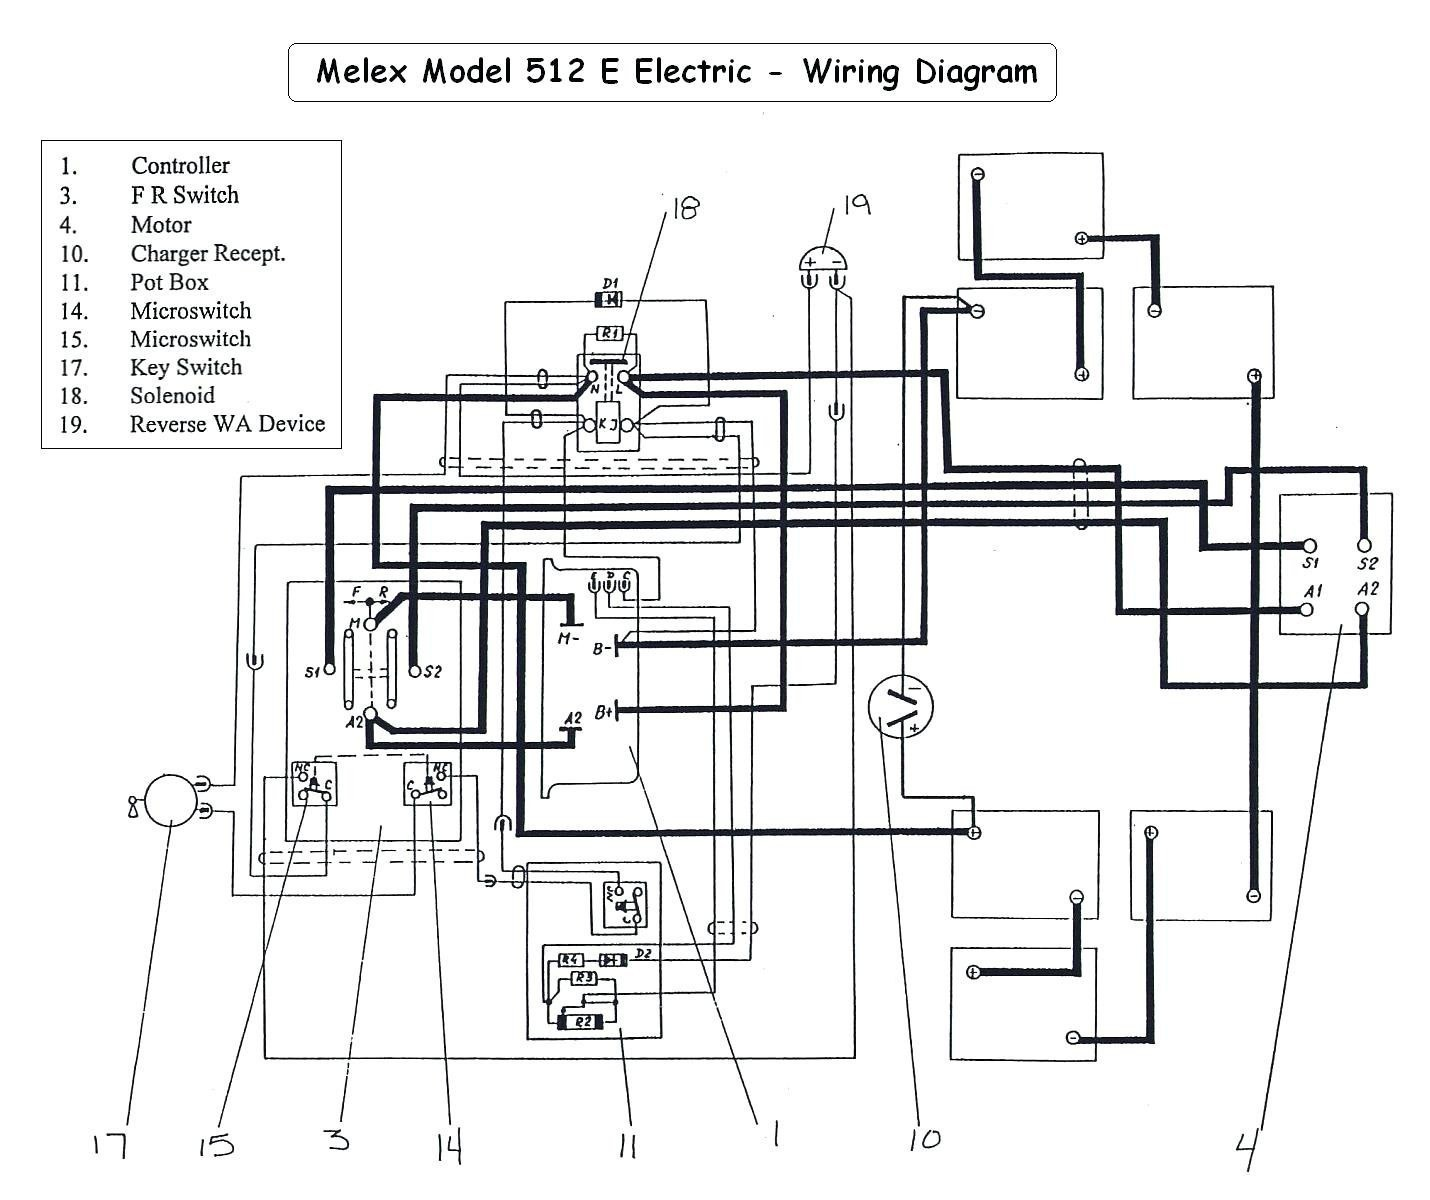 E Ton Wire Diagram. e ton atv wiring diagram database. e